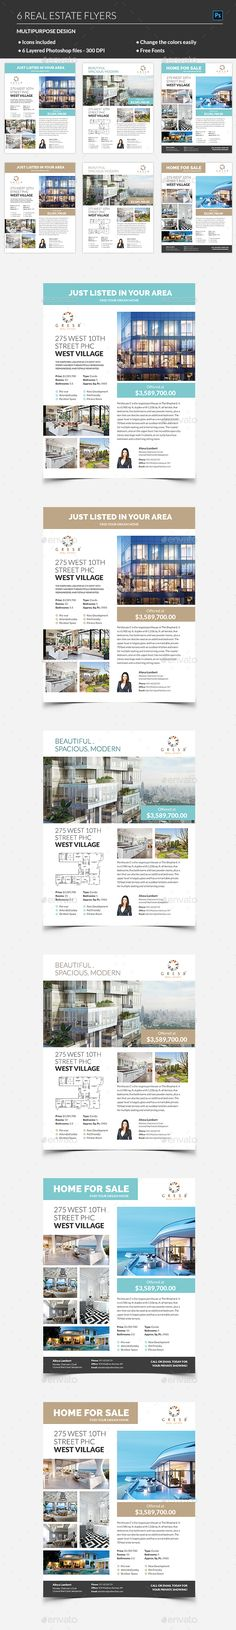 Real Estate Flyer Design Template - Corporate Business Cards Flyer Design Template PSD. Download here: https://graphicriver.net/item/real-estate-flyer/19197032?ref=yinkira